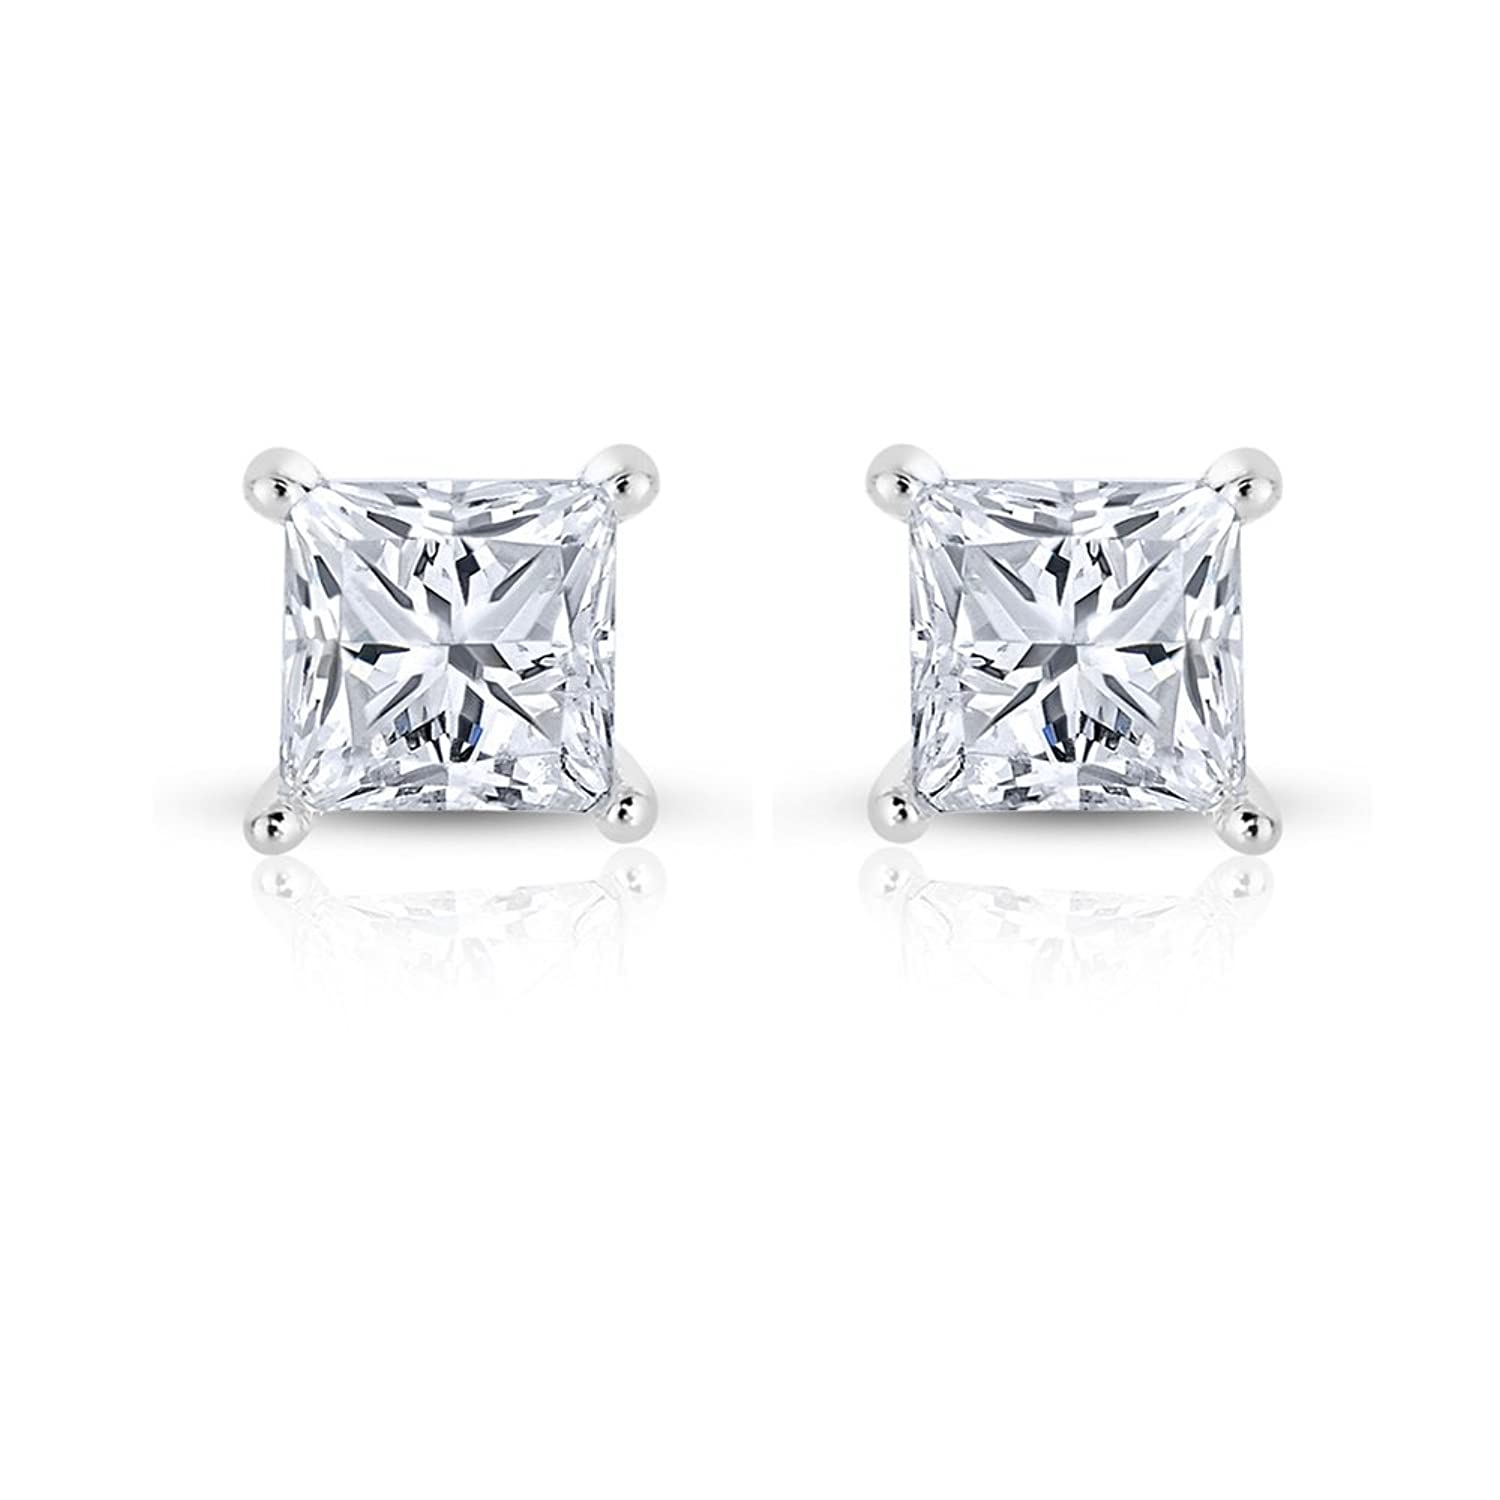 Amazon 14k White Gold Princess cut Solitaire Diamond Stud